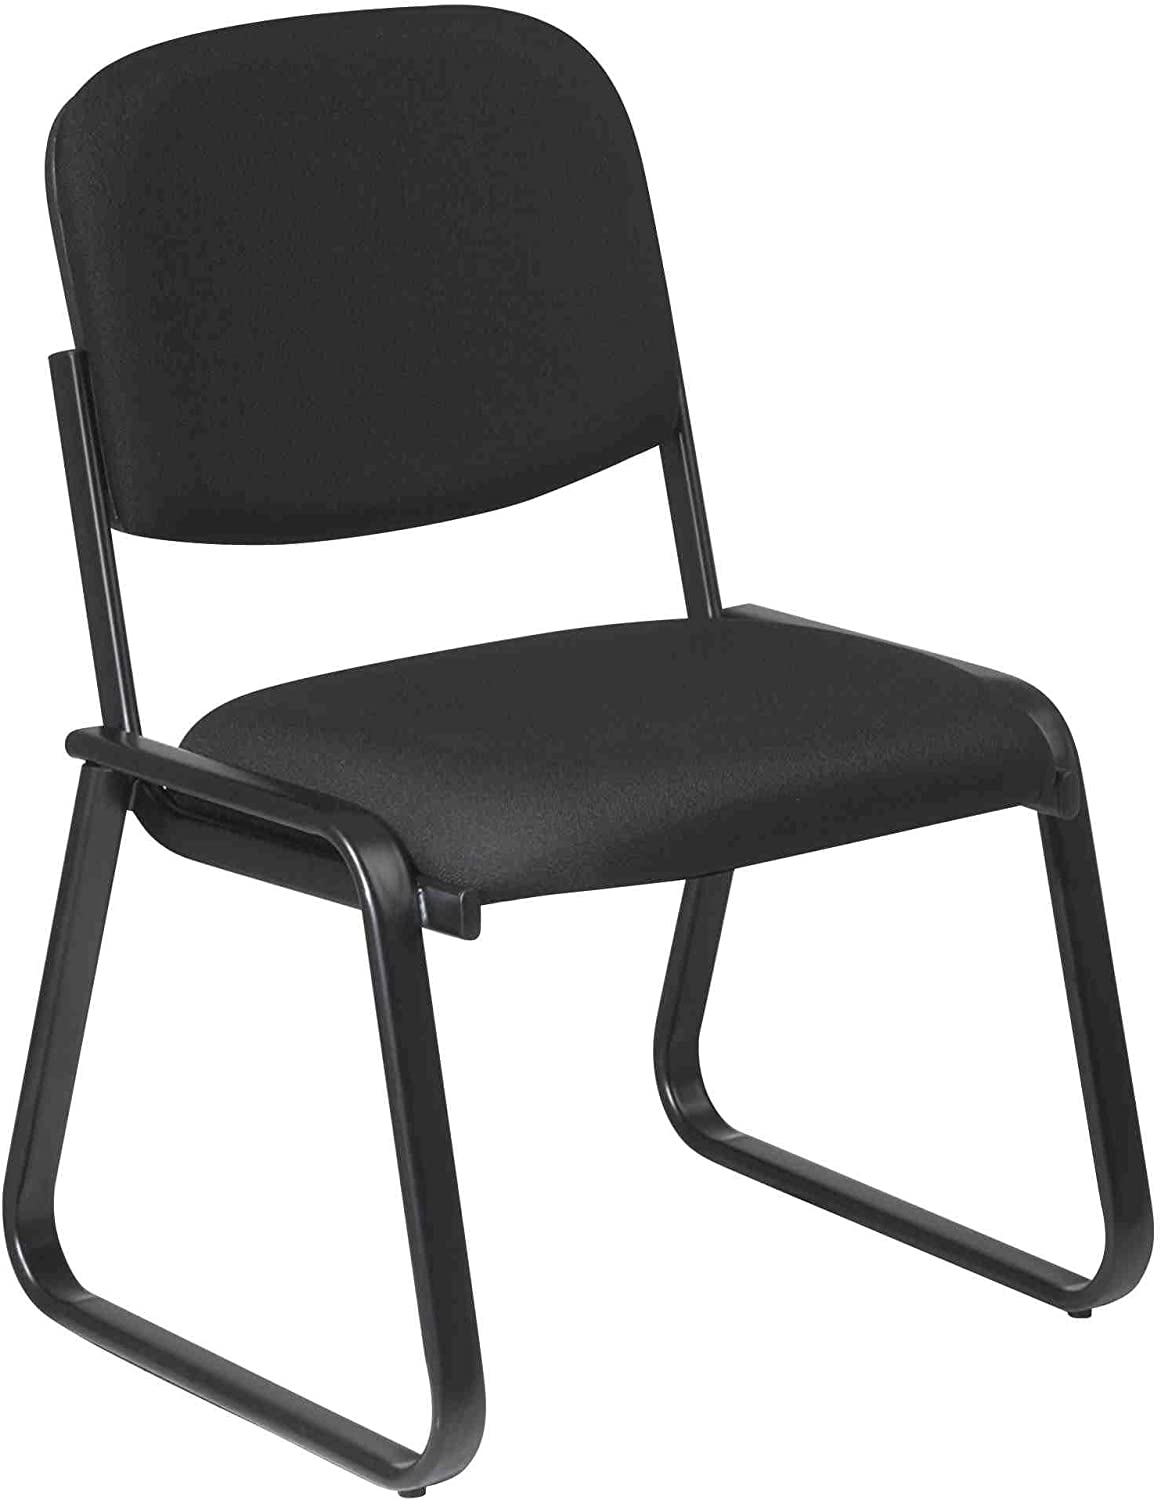 Office Star Work Smart Deluxe Sled Base Arm Chair with Designer Plastic Shell Back, Cabernet